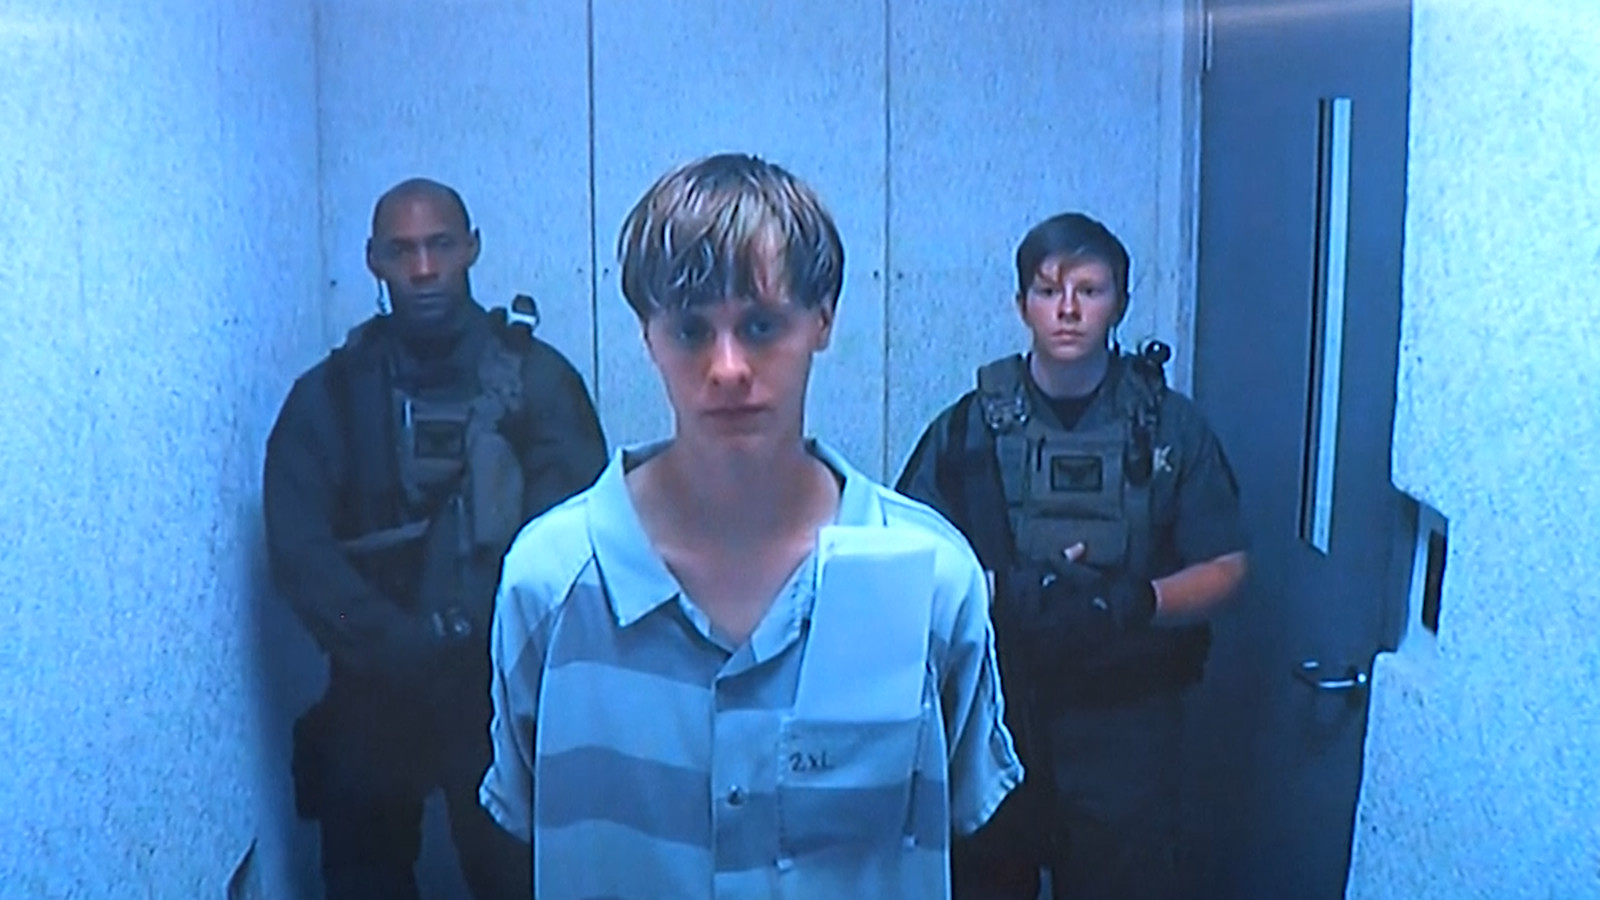 The Charleston Shooting Is Part Of A Long History Of Anti